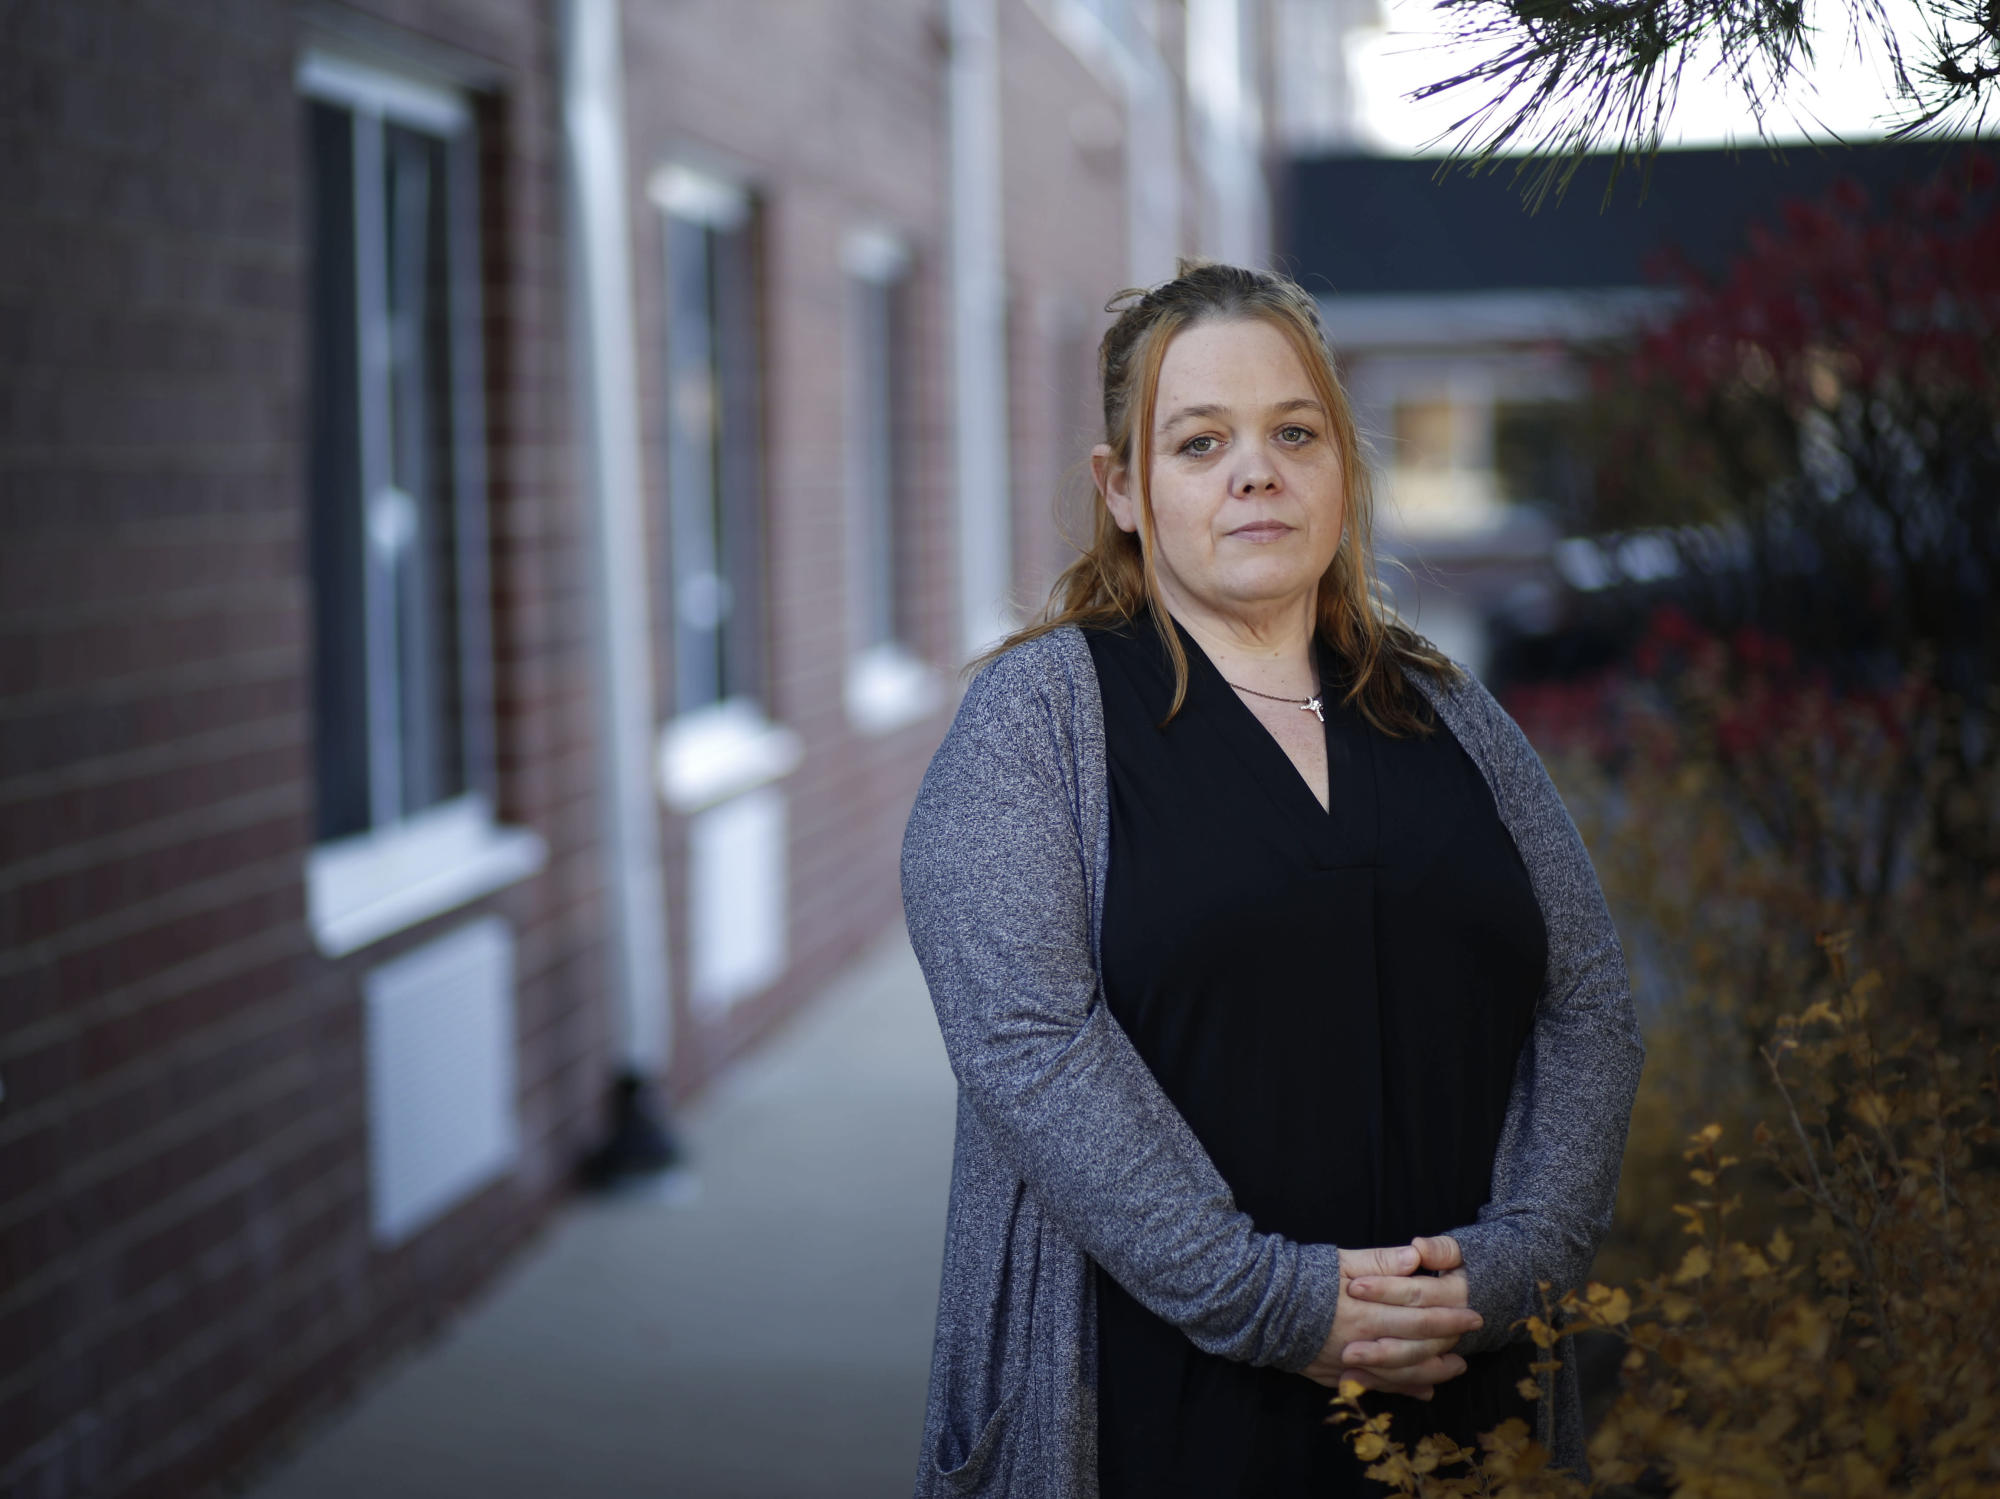 Kenosha shooter's mother tries to deflect blame from her son